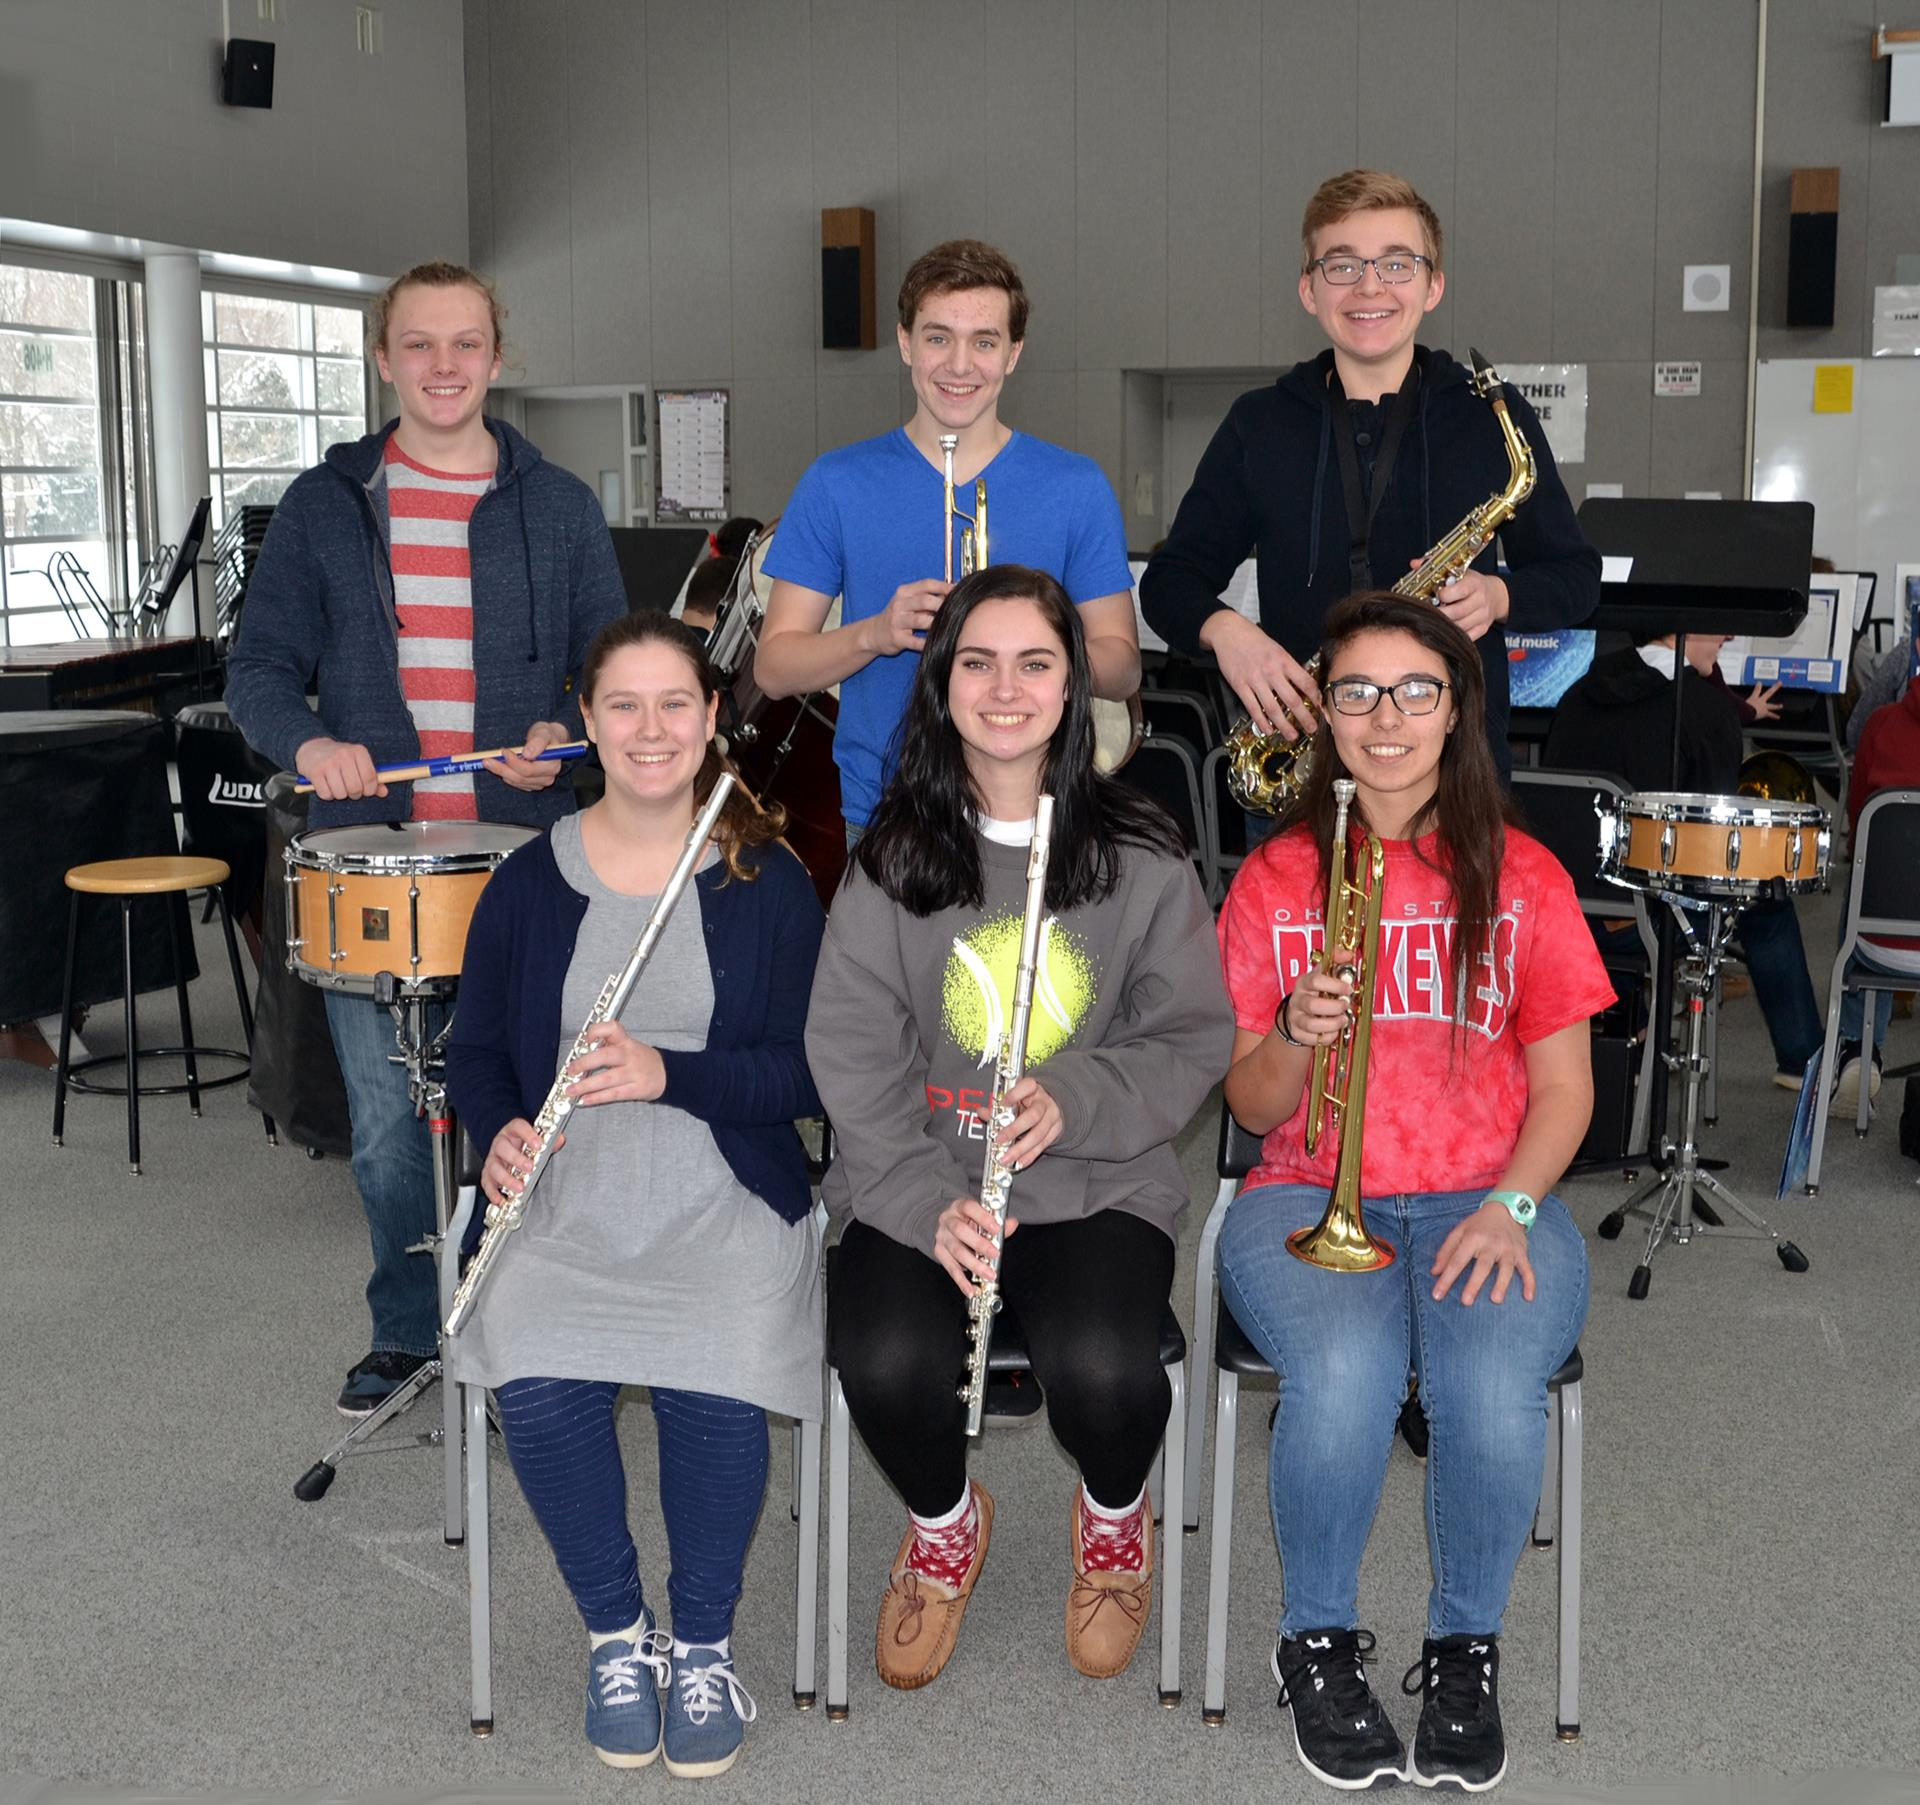 Perry High School band members receiving a Superior Rating for their Instrumental Solos in the Ohio Music Association's 2018 Solo & Ensemble Adjudicated Event are: (front row, from left) Riley Kuhn, Emma Kurtz, and Cassandra Warfield, (back row, from left) Gavin Tannish, Patrick Noonan, and Kirk Hodkinson. Not pictured are: Madeleine Pierce, Tia Gillespie, and Hannah Wren.